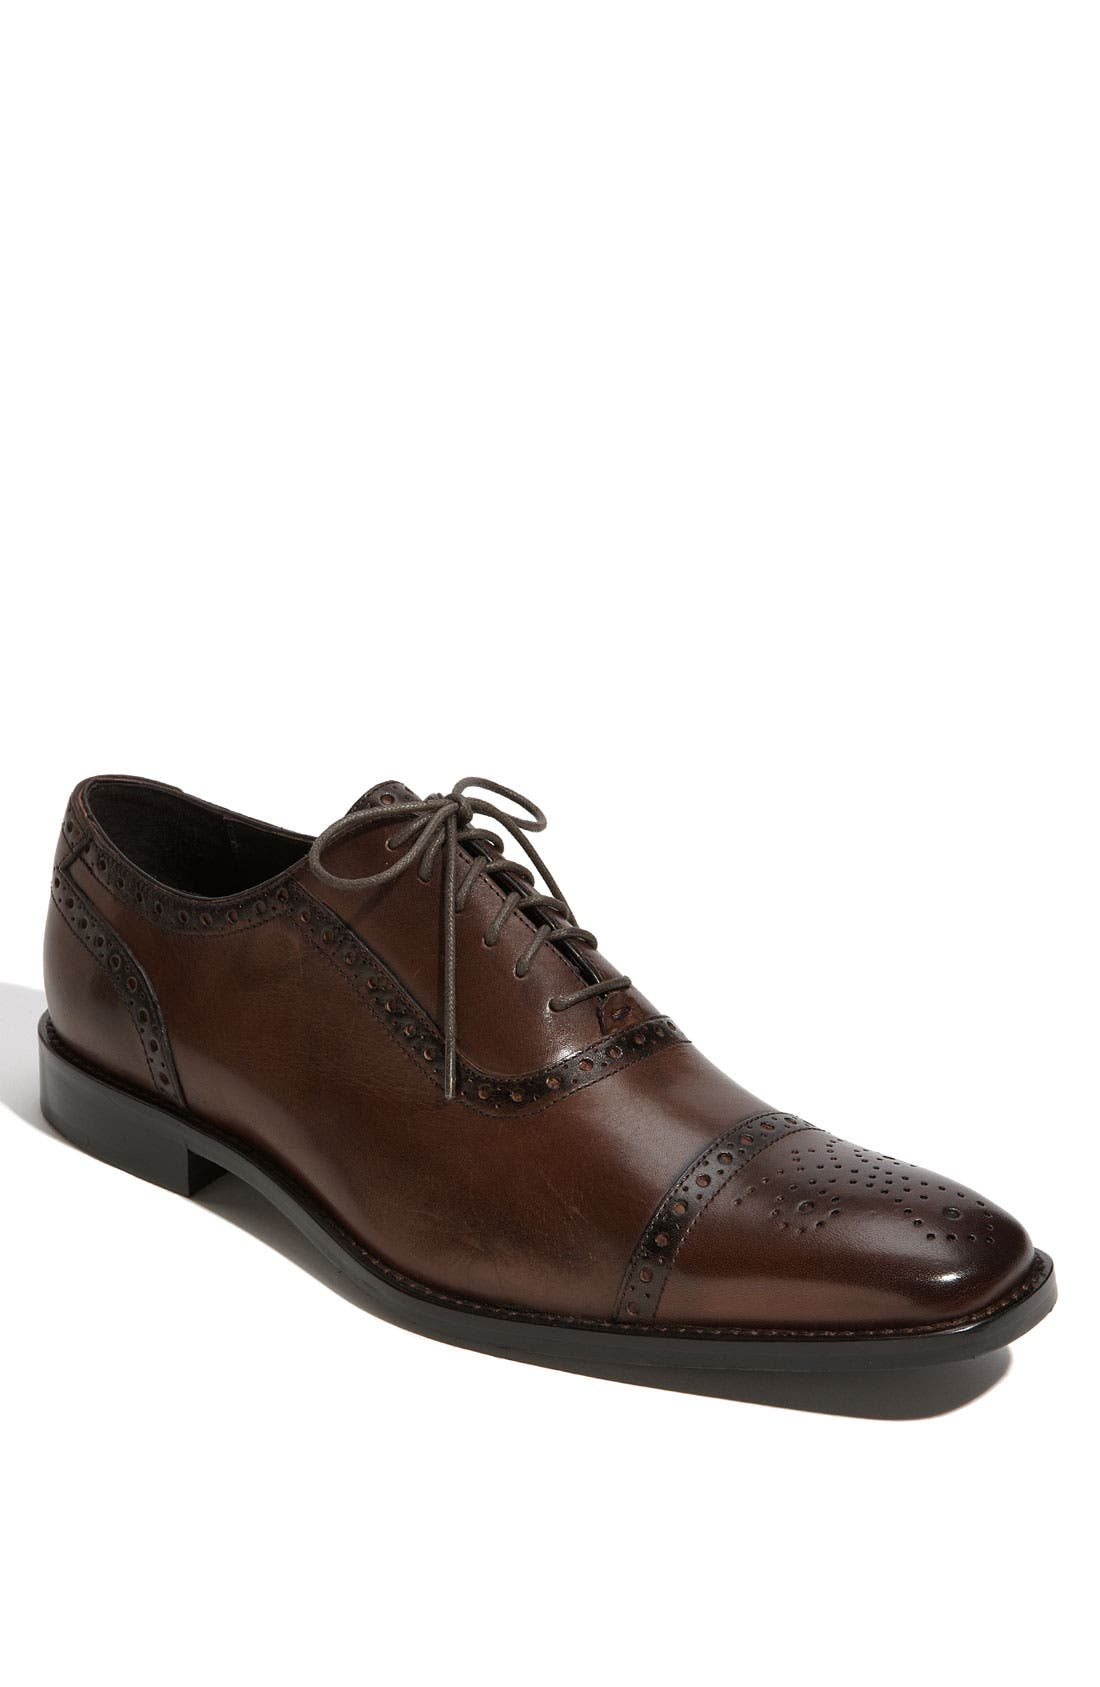 Alternate Image 1 Selected - Calibrate 'Brandon' Cap Toe Oxford